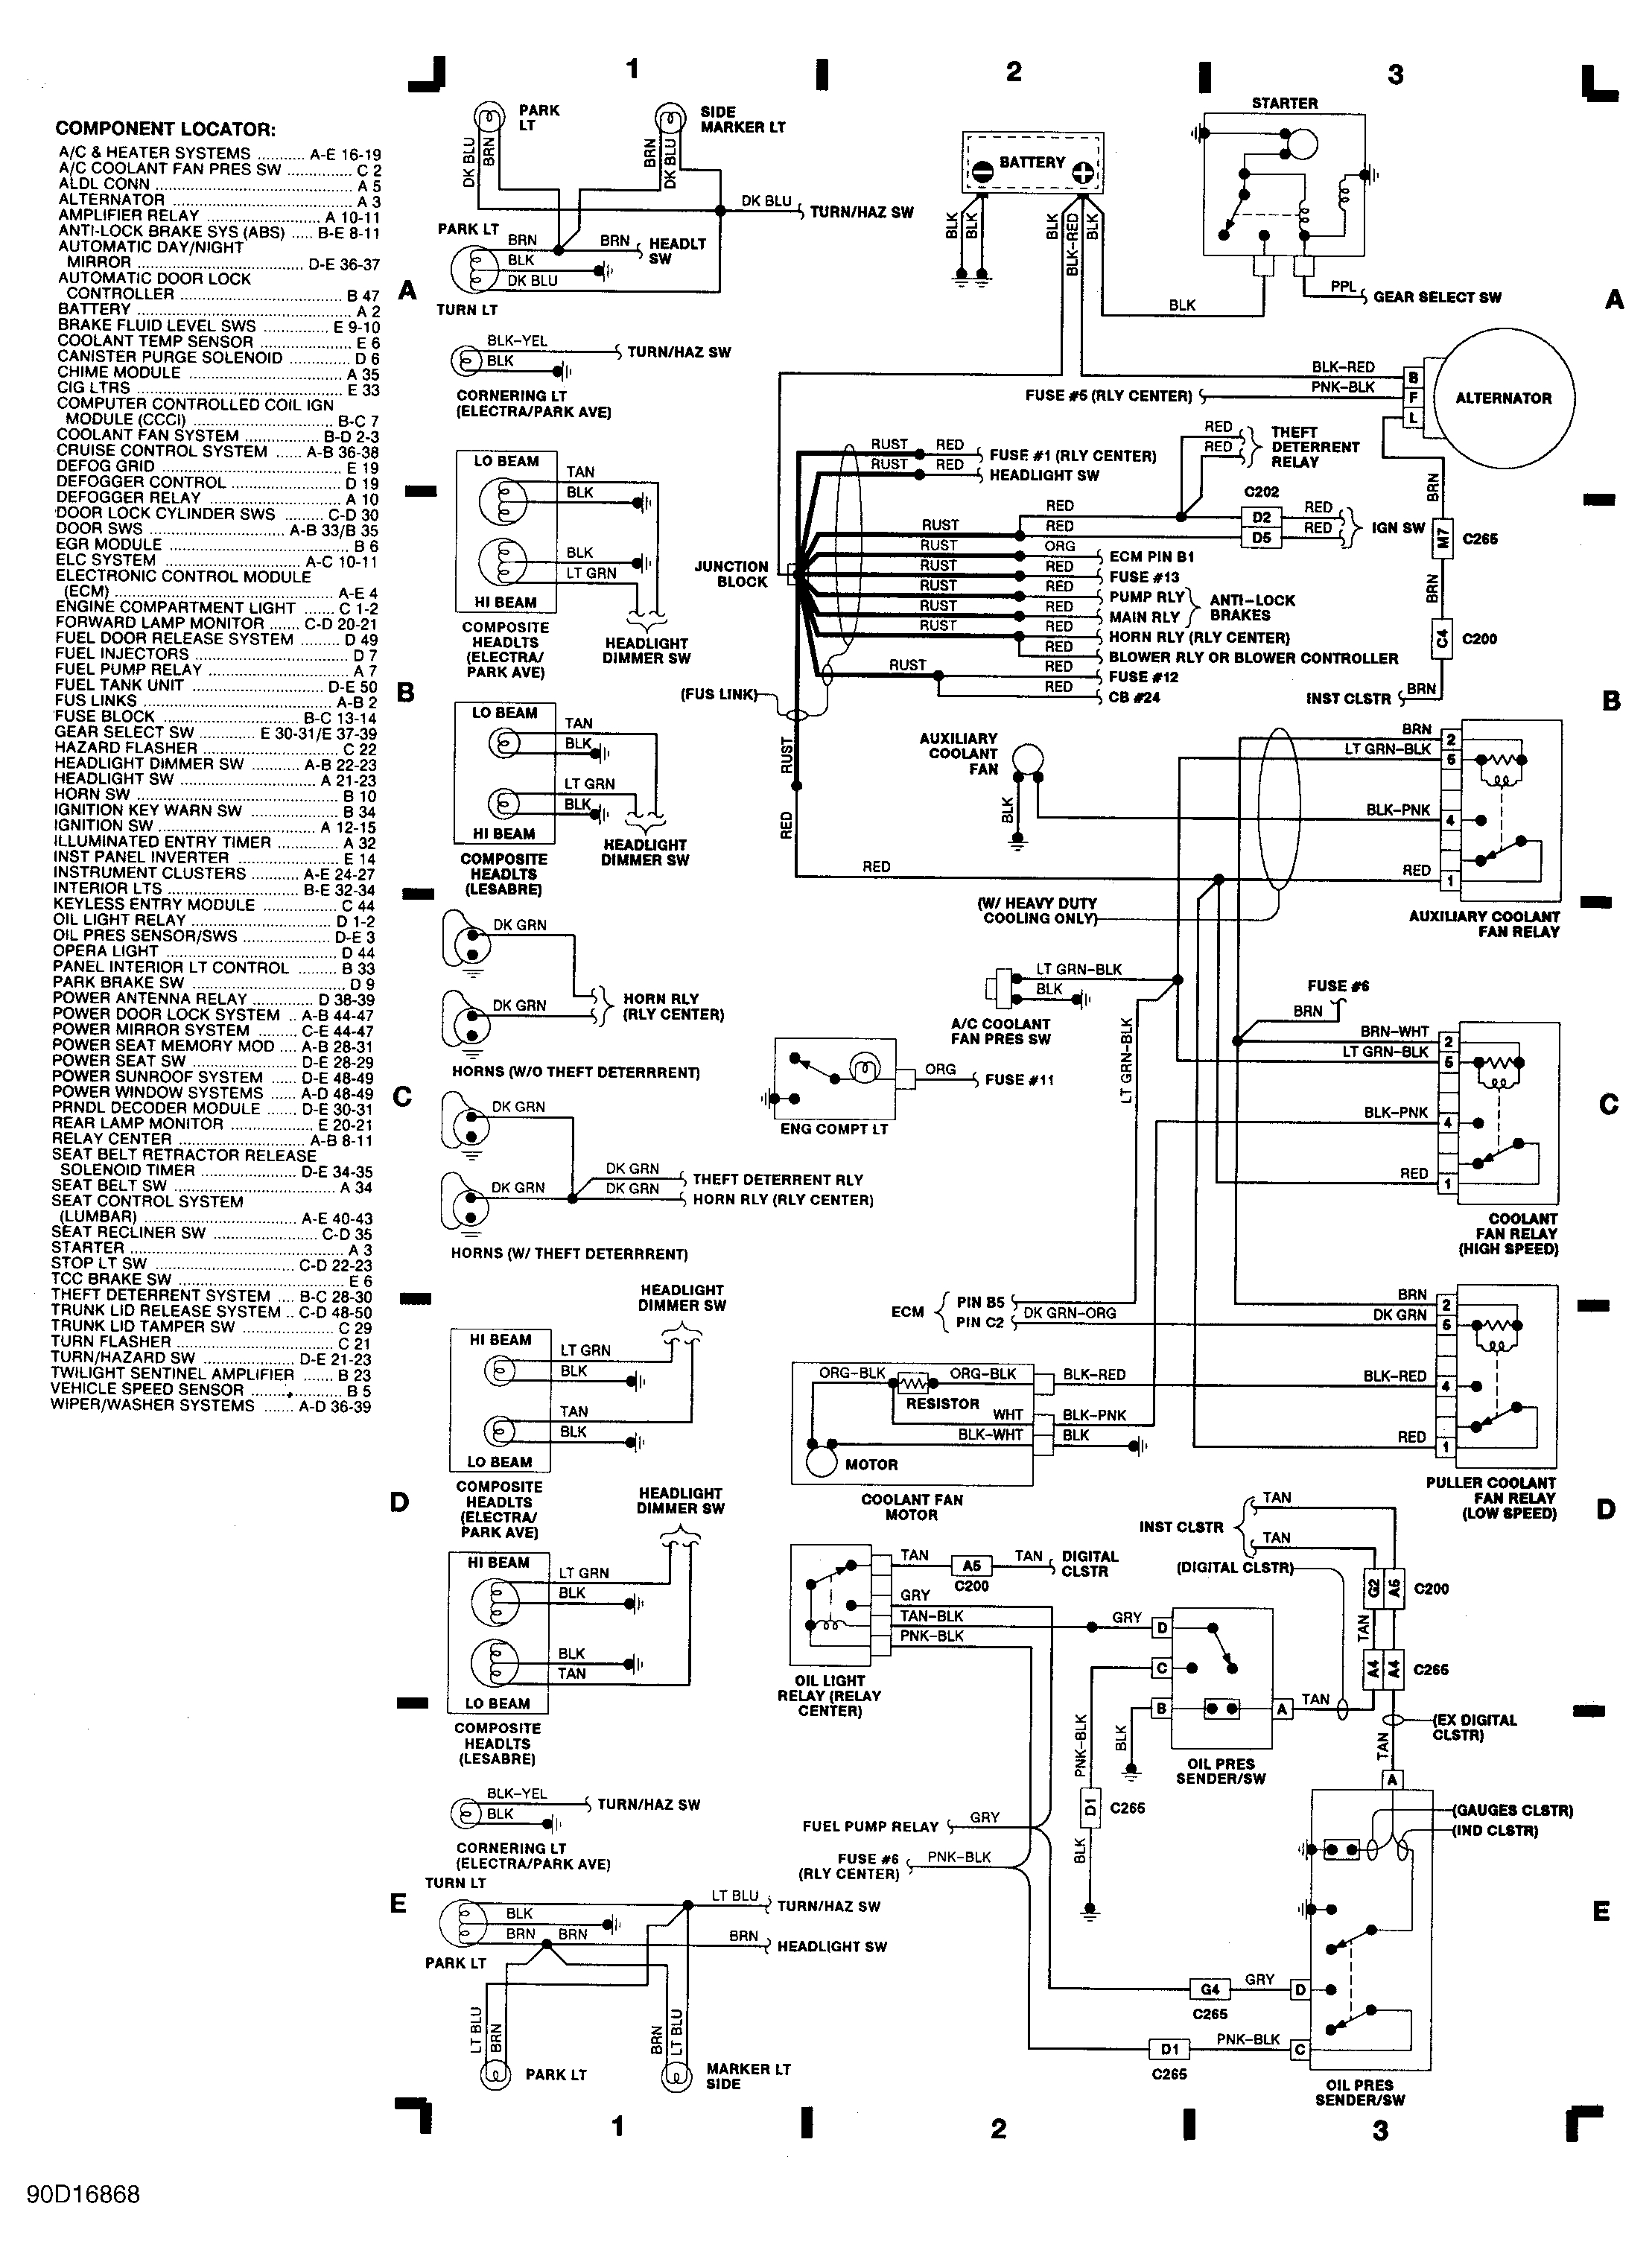 1990 Chevy Lumina Wiring Diagram Detailed Schematics Chrysler New Yorker Schematic Diagrams 92 1500 Transmission Buick Lesabre Cooling